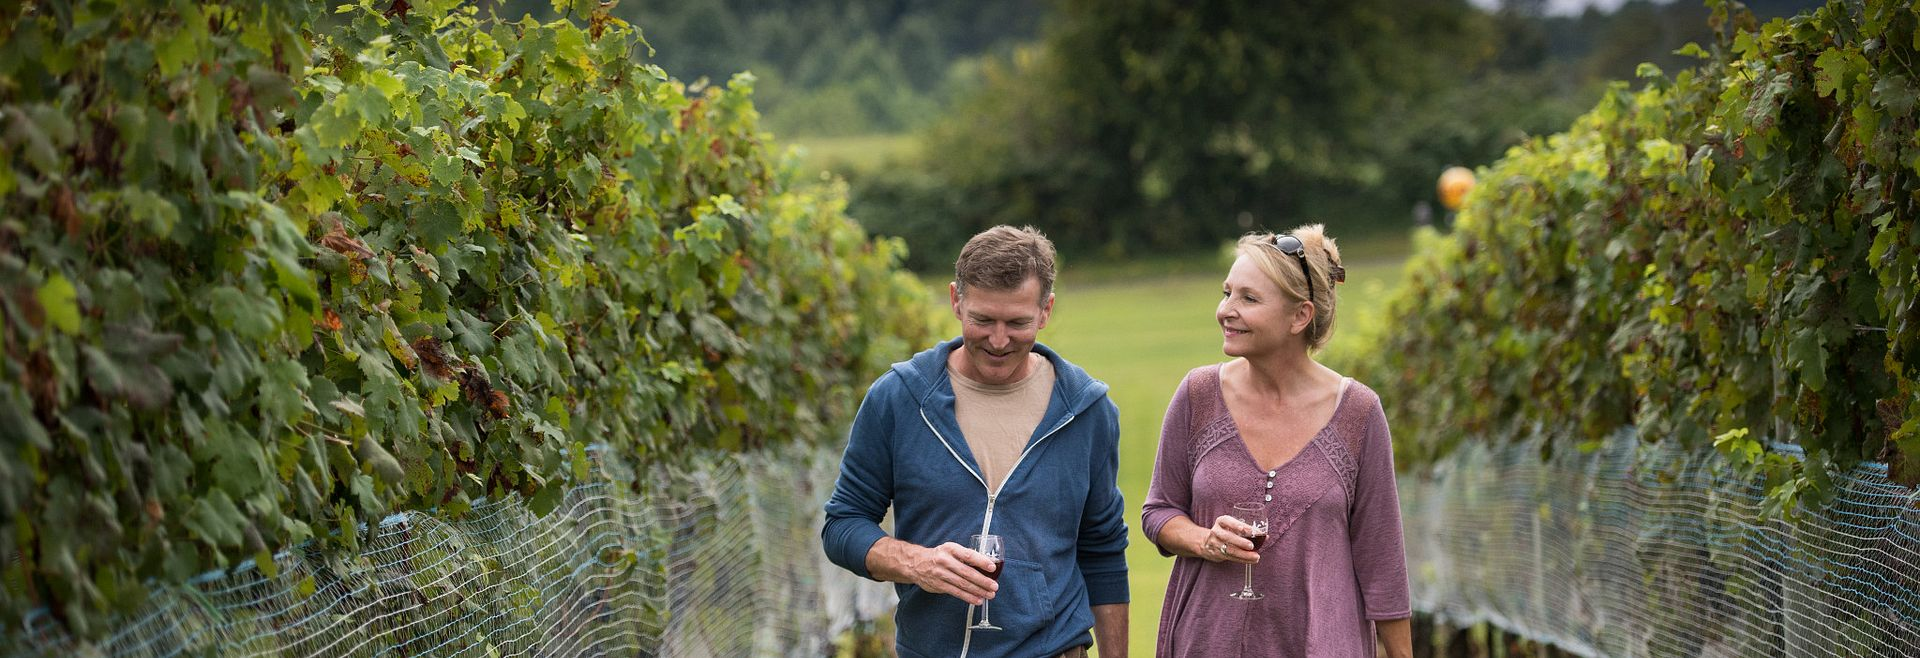 Couple walking amongst grape trees holding glasses of wine and talking